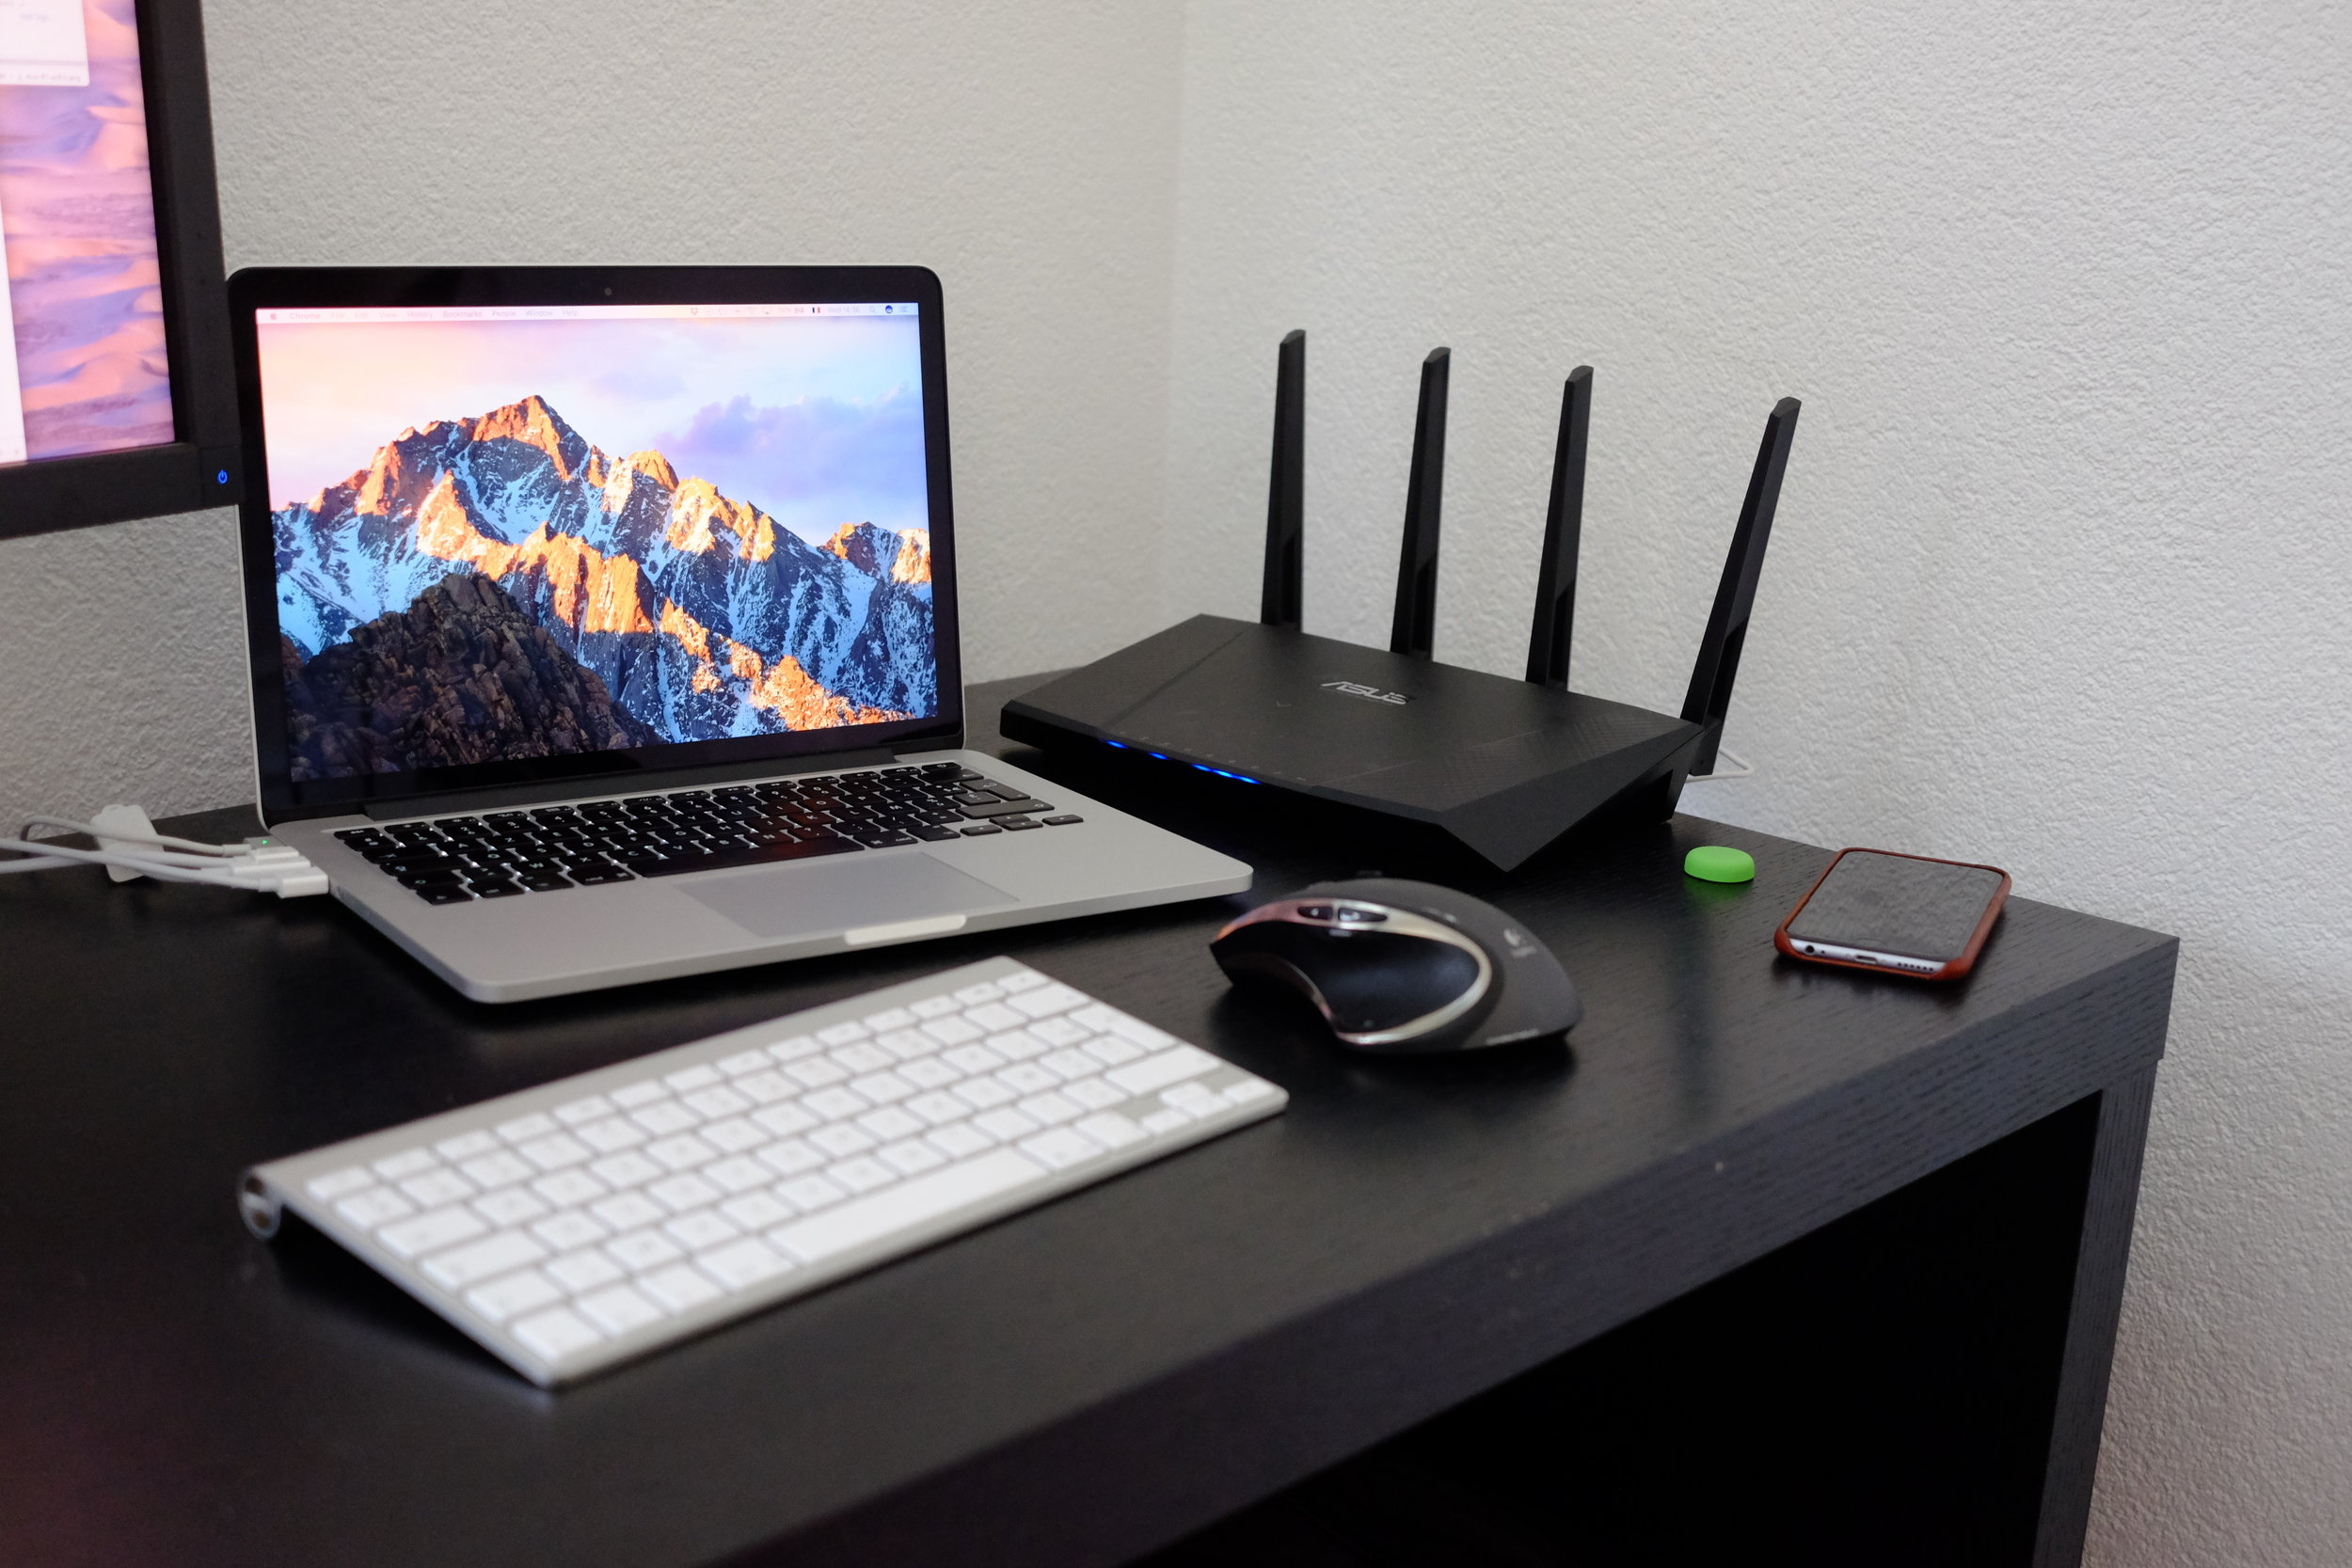 The sci-fi design of Asus routers is way too geeky to my taste - Photograph Philippe Regnier